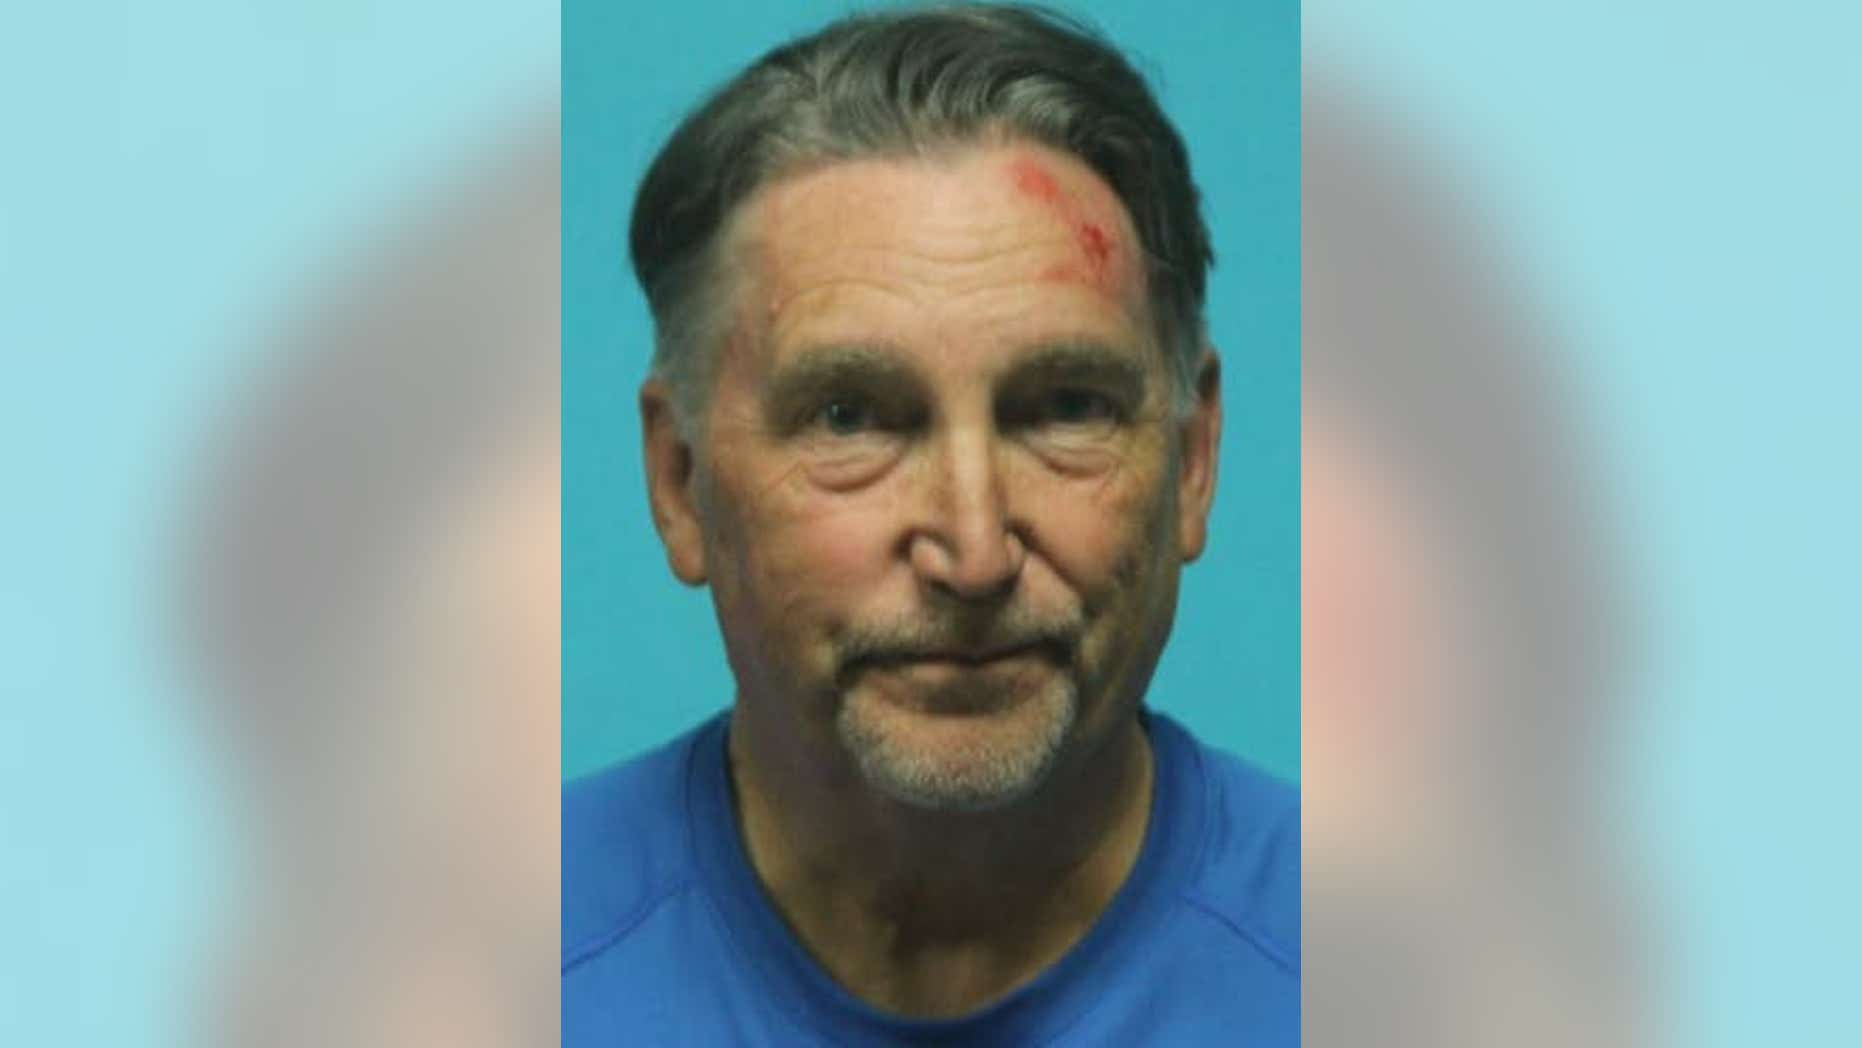 Patrick Yadauga, 62, was charged with driving while intoxicated, resisting arrest and assault on a public servant, authorities say. (Southlake Police Department)